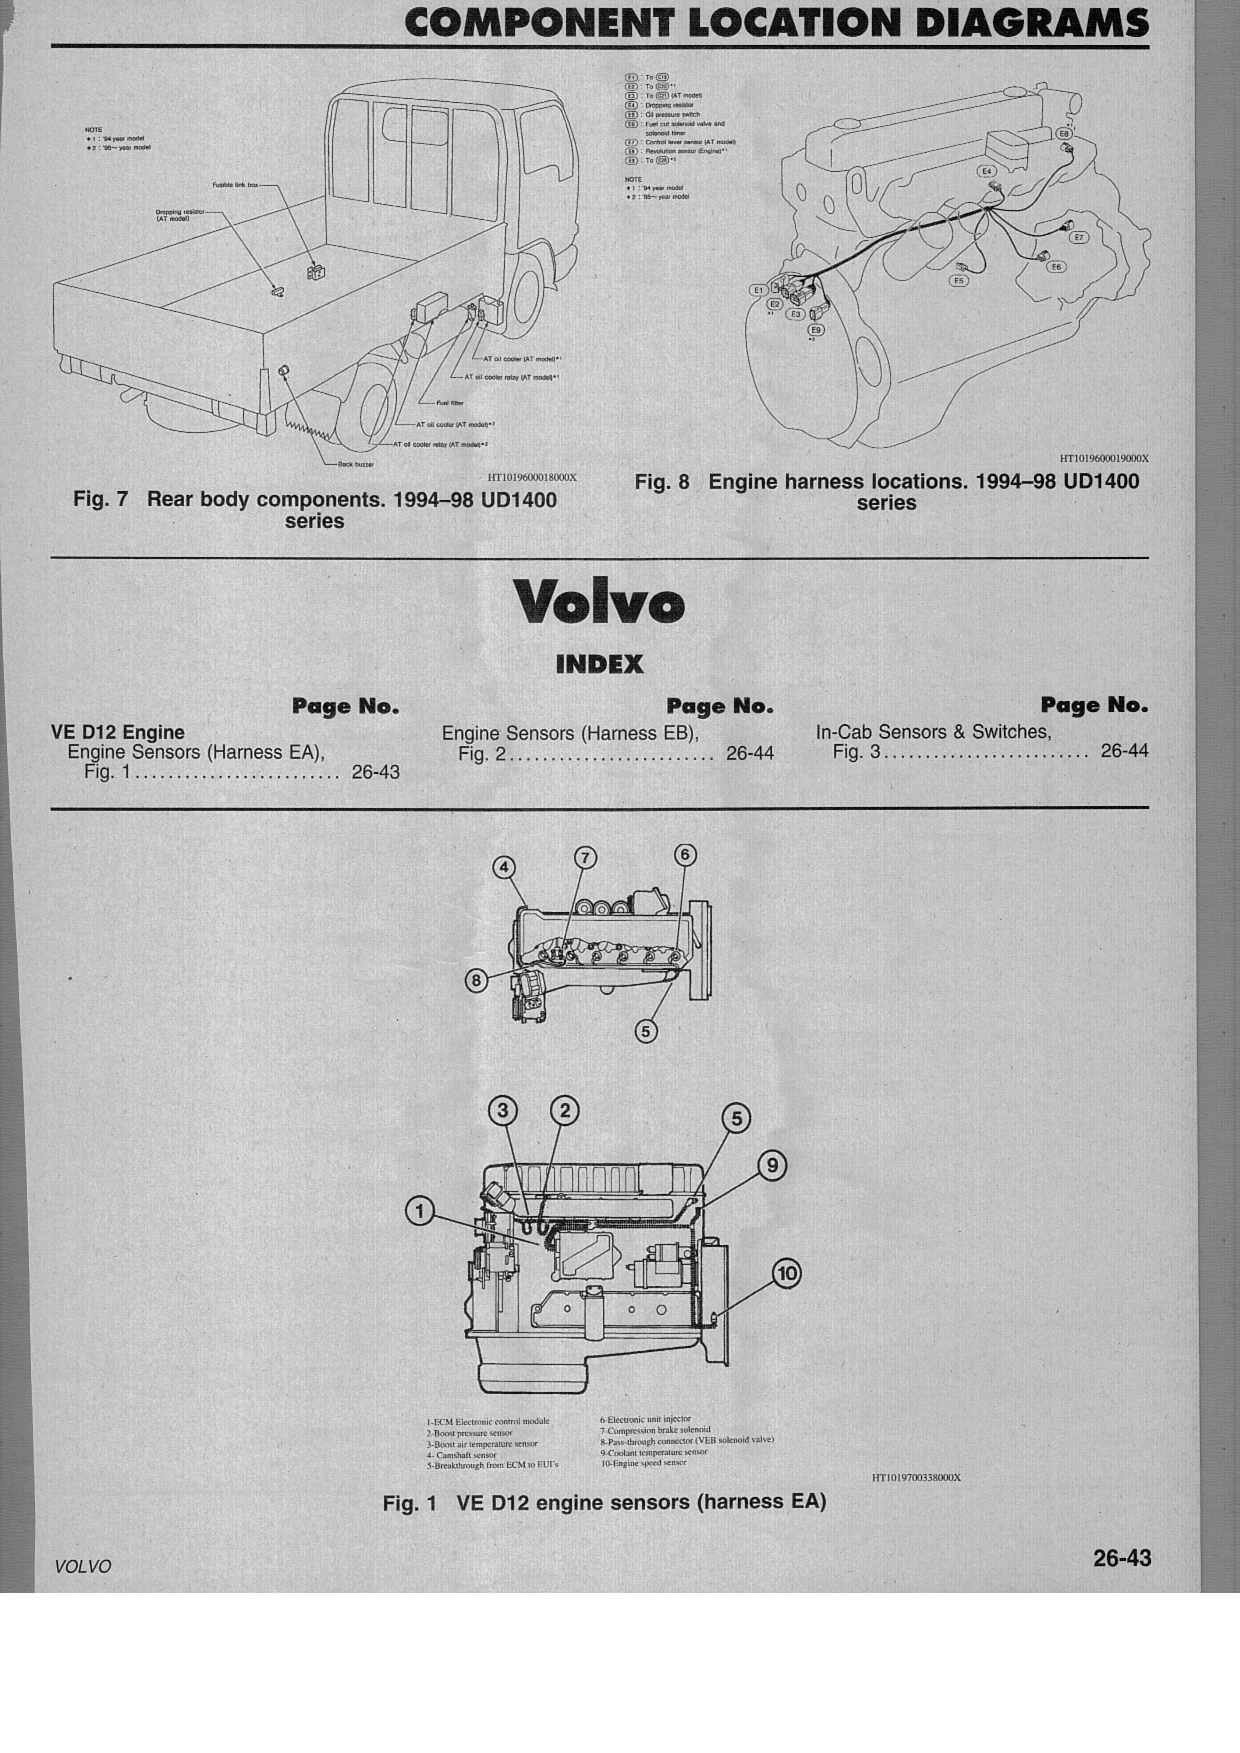 Volvo D12 Ecm Wiring Diagram Manual E Books F4a51 I Have A 2000 Semi Tractor With 385 Engine That Has Anvolvo